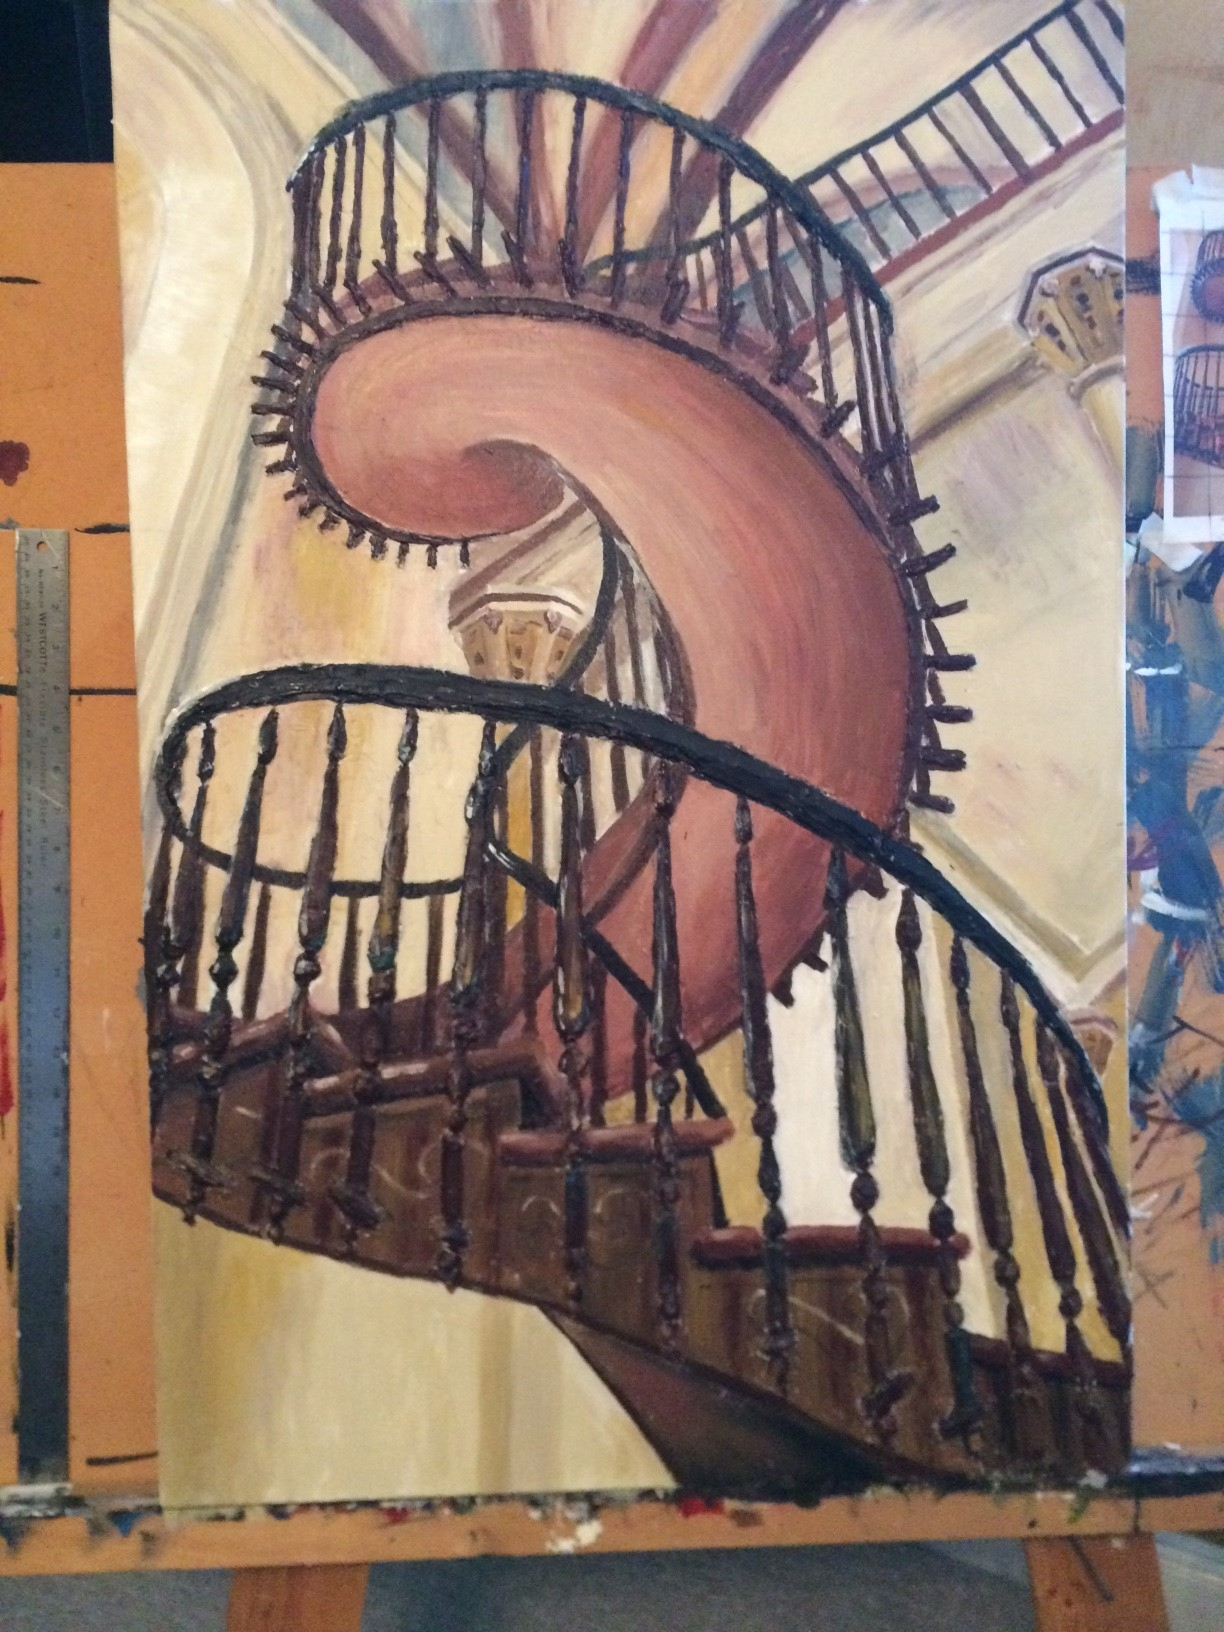 Sculptural Painting Of Spiral Staircase Progression — Creative   Painting Metal Spiral Staircase   Stair Case   Staircase Kit   Stair Railing   Powder Coating   Spray Paint